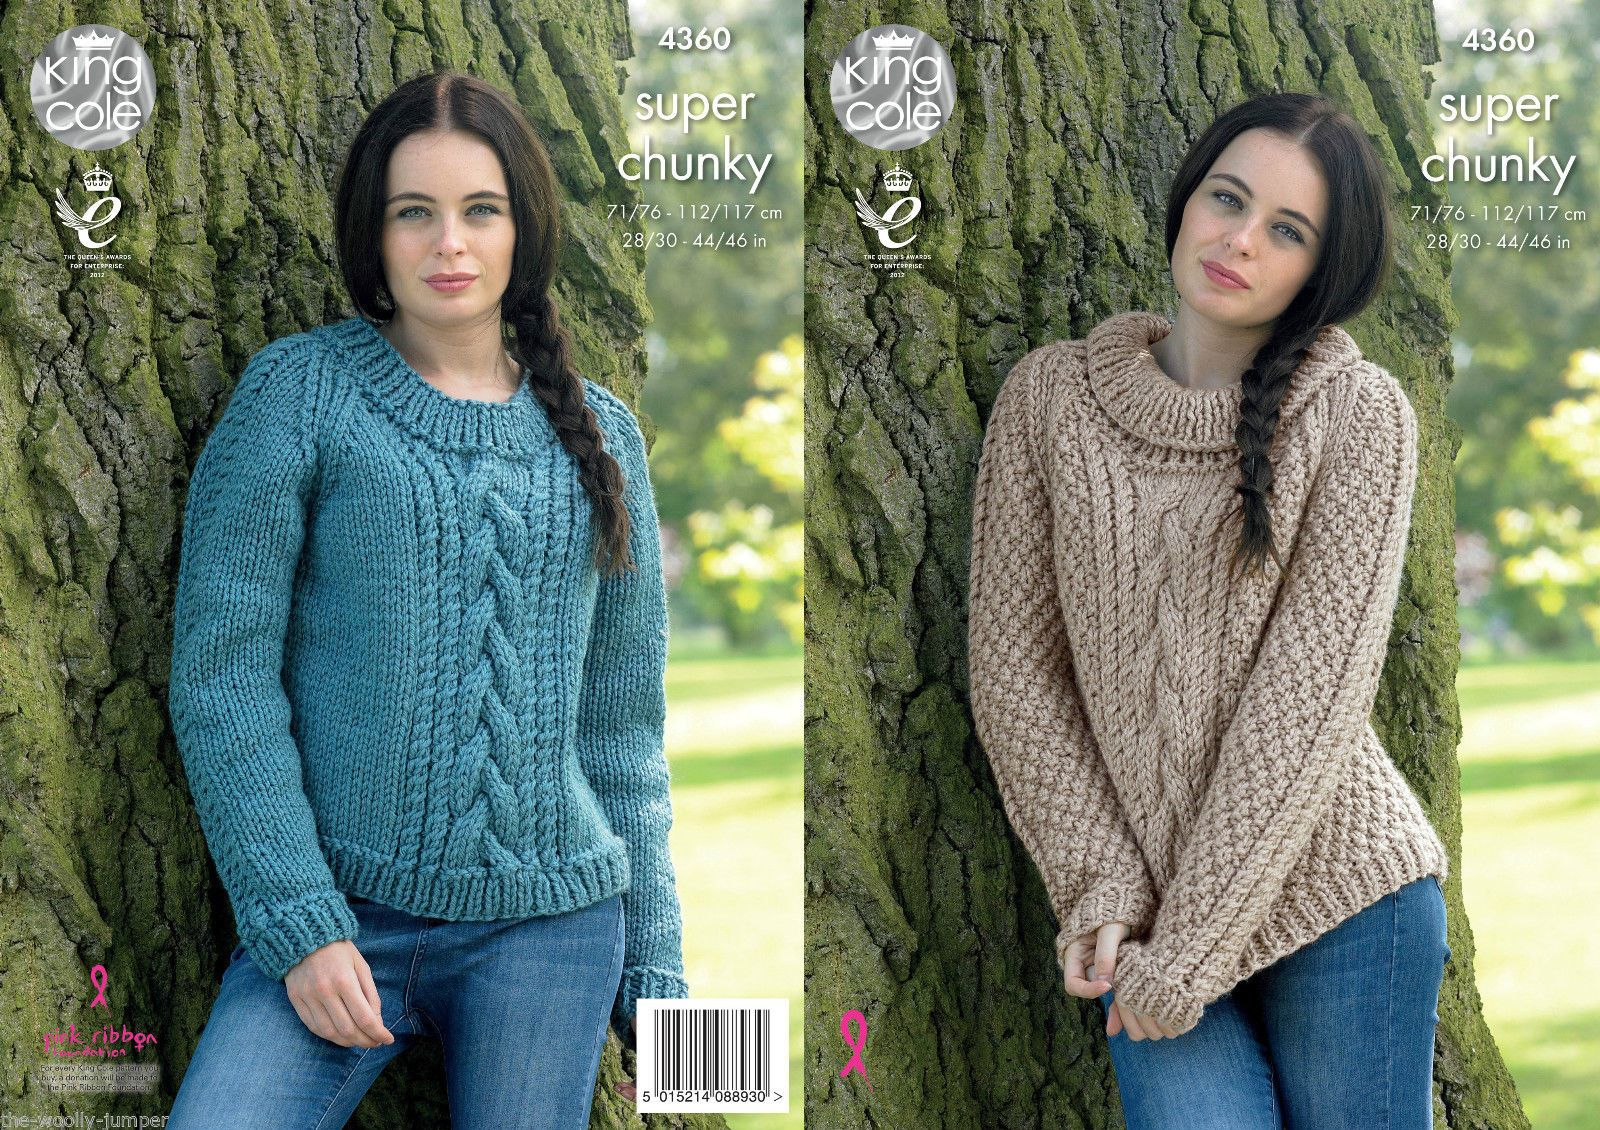 5204c7ecd9812 4360 - KING COLE BIG VALUE SUPER CHUNKY SWEATER KNITTING PATTERN - TO FIT  CHEST 28